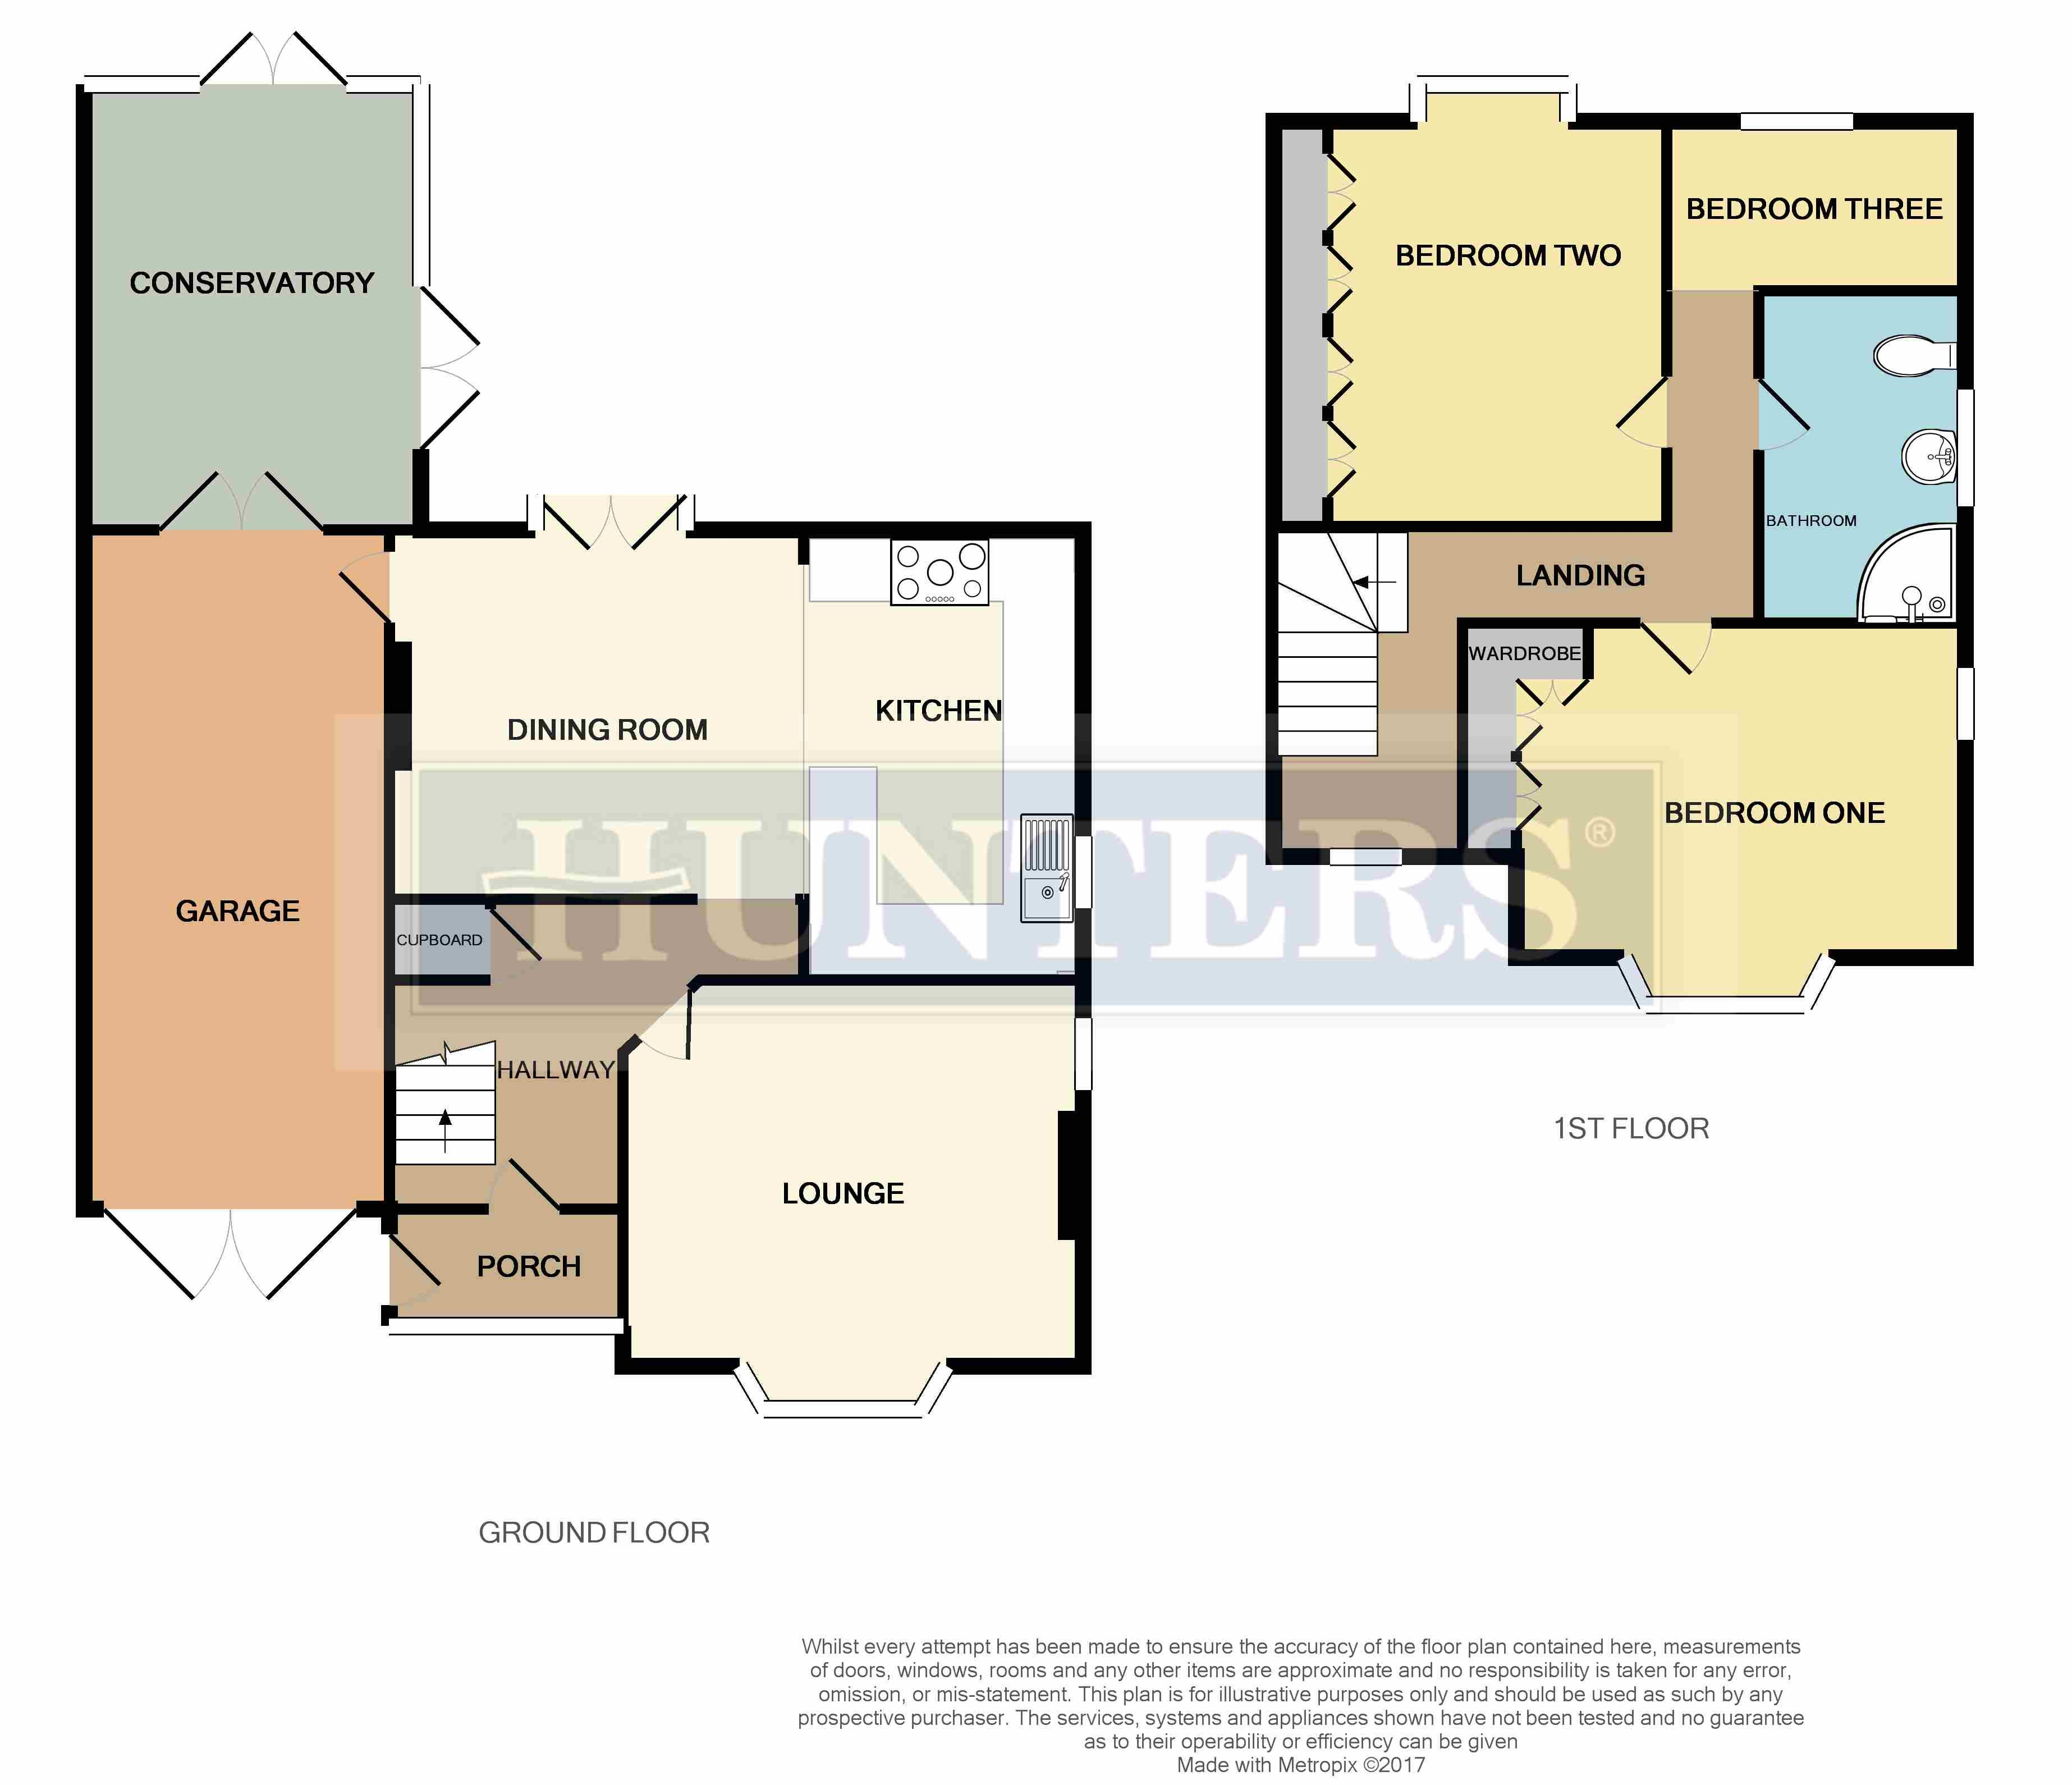 Average Cost Of Rewiring A 3 Bedroom House Bed Uk Home And Garden Costs Prices